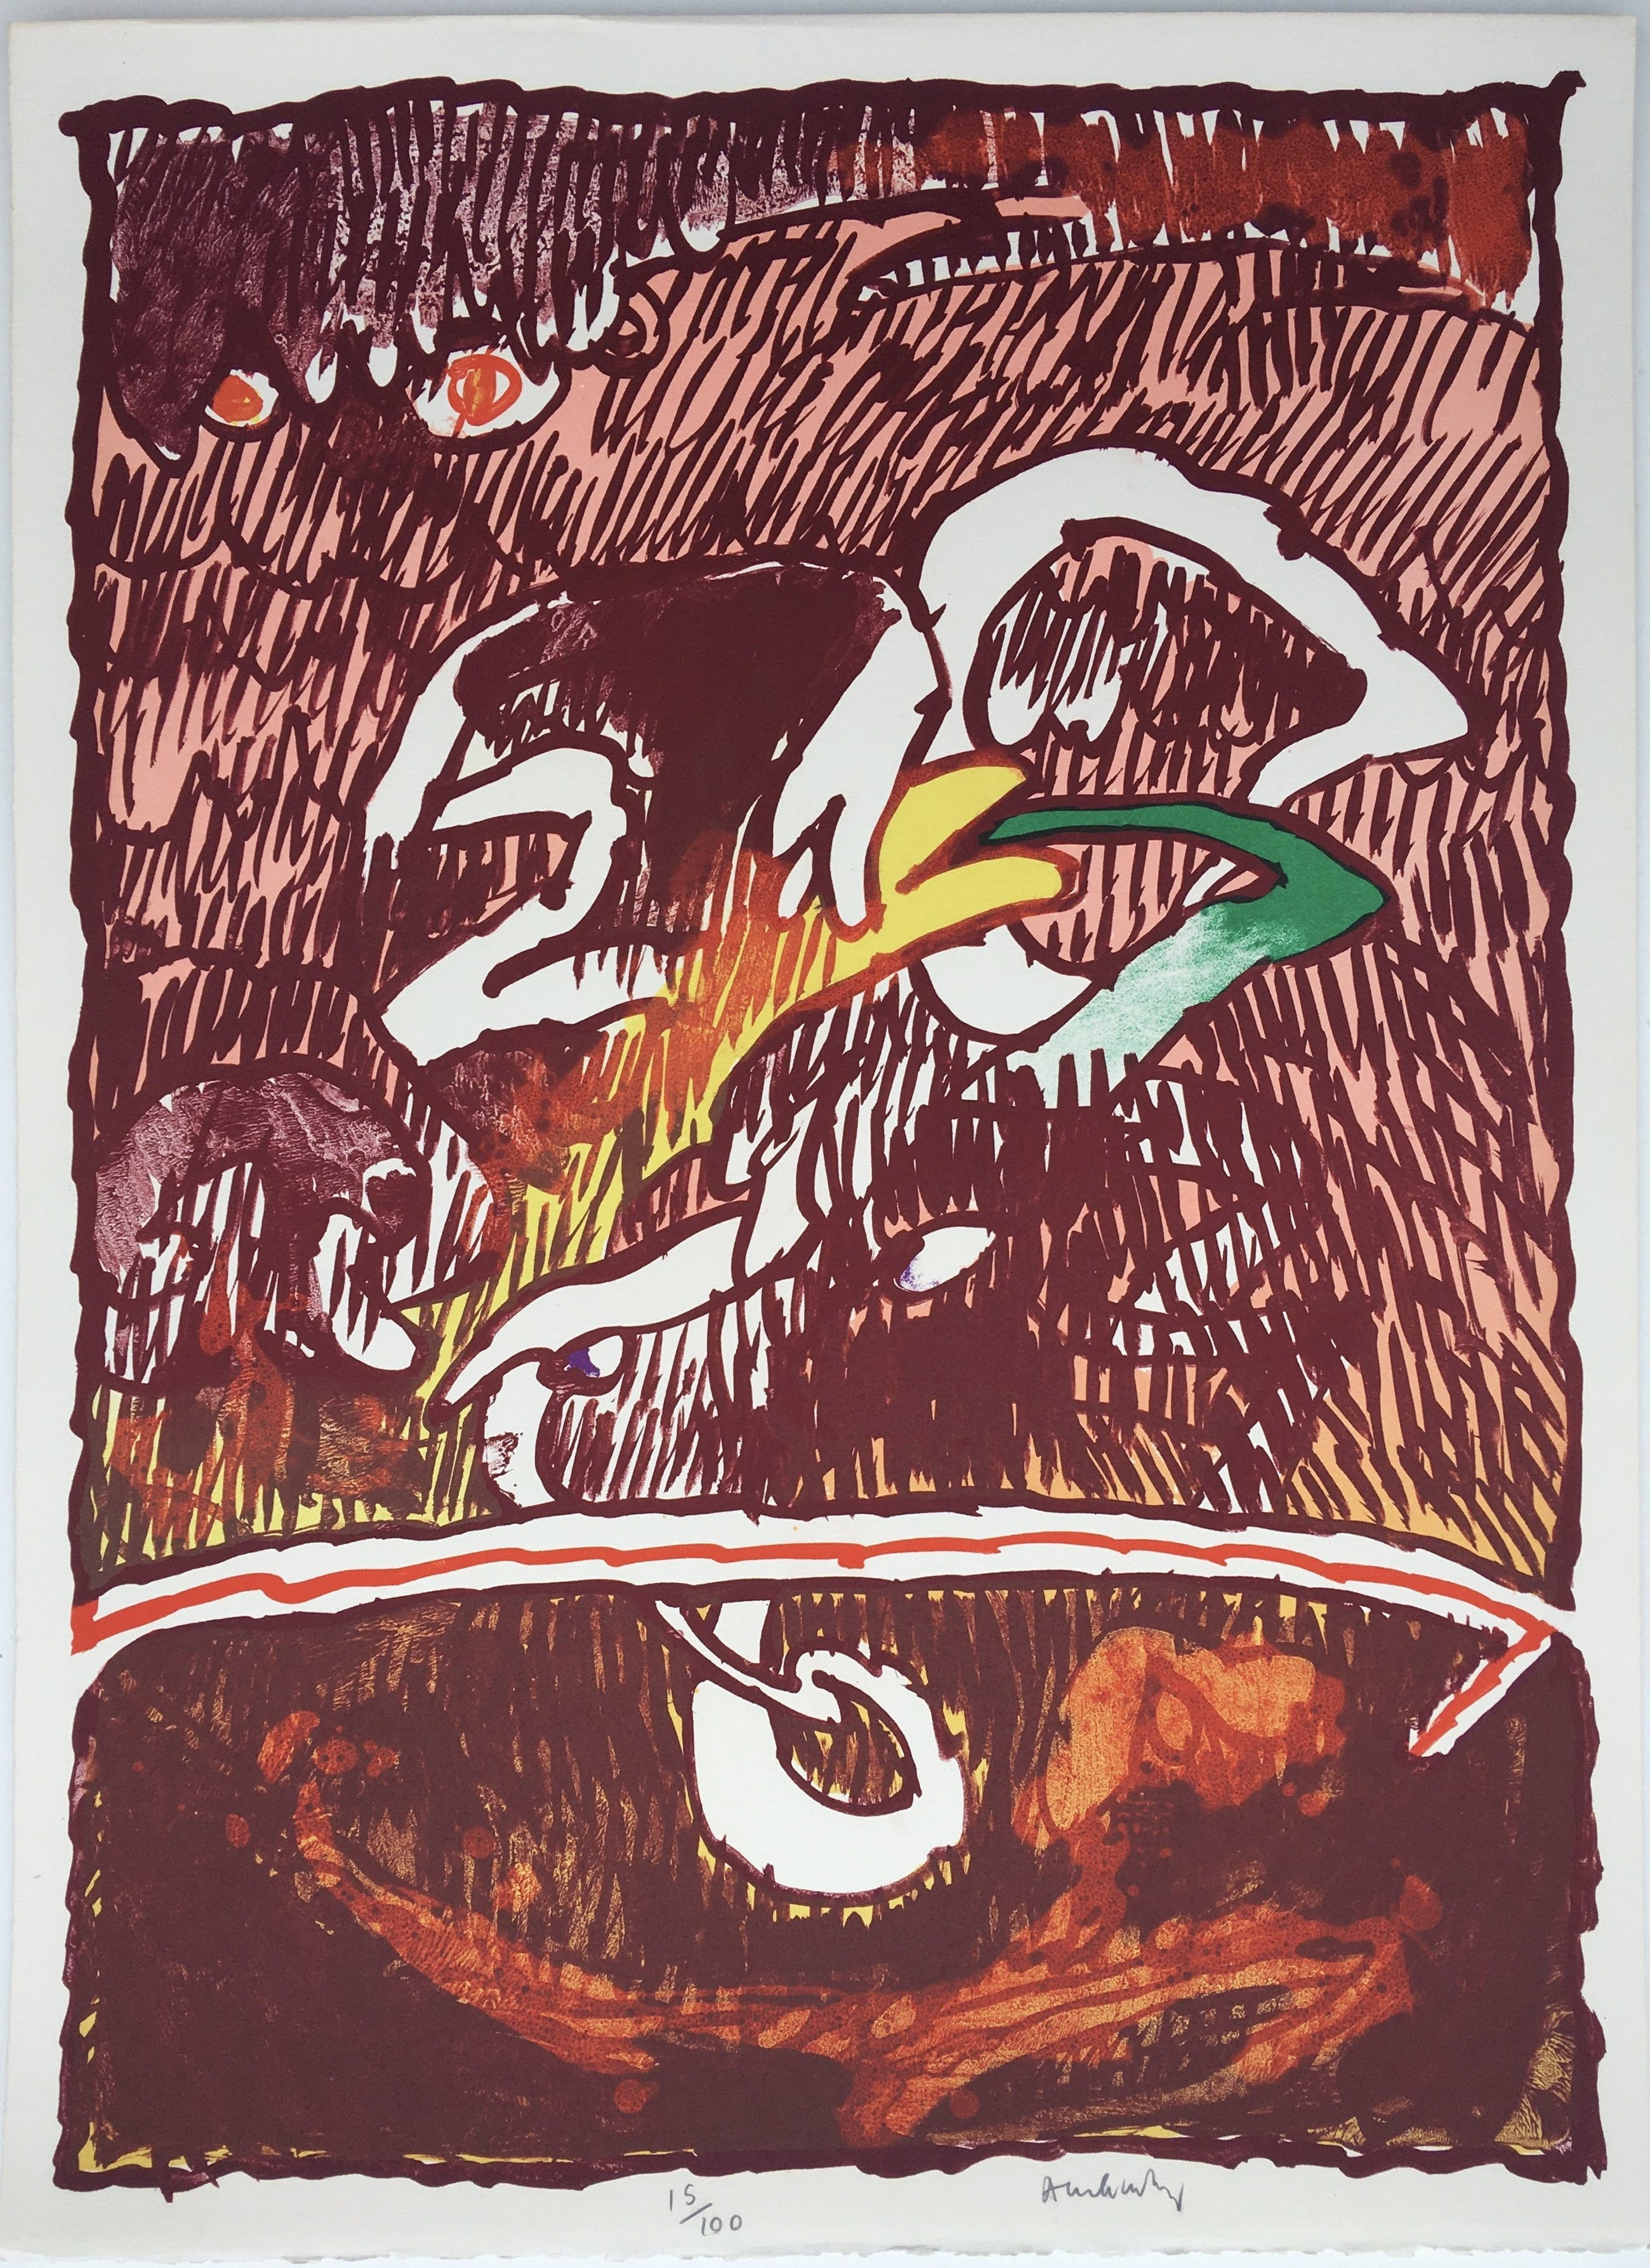 Pierre Alechinsky - litho 'Invisible Flying Objects' - 1978 kopen? Bied vanaf 750!